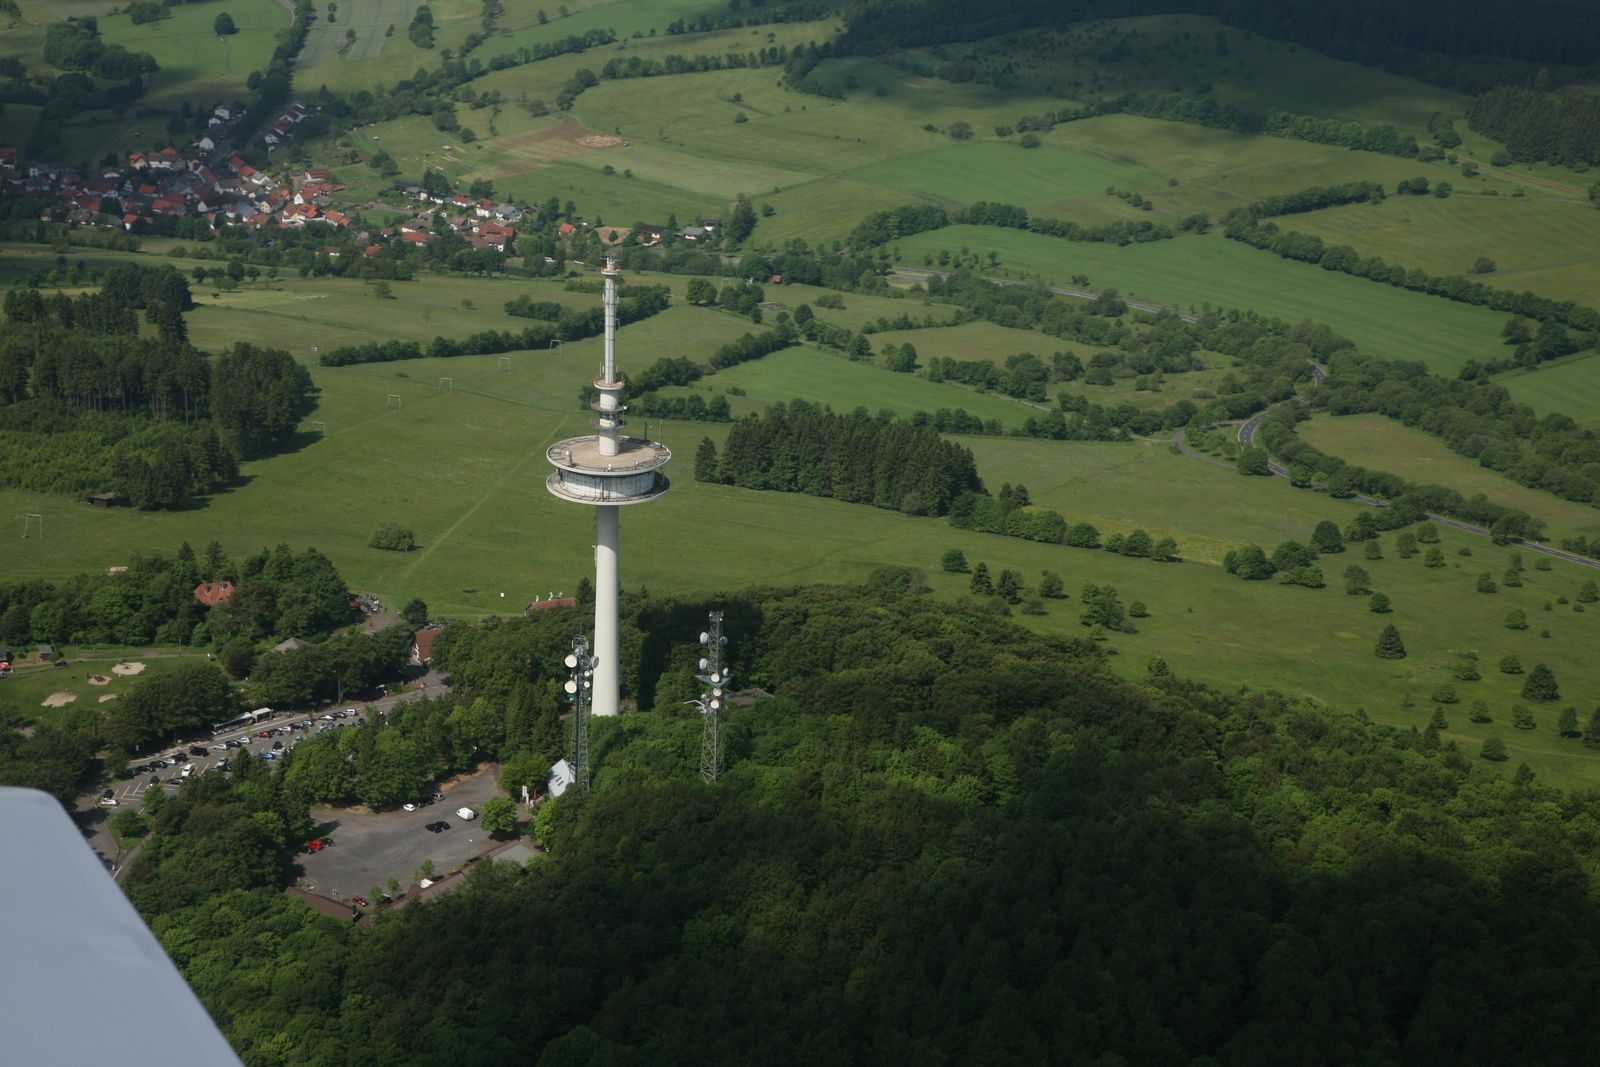 Vogelsberg - Hoherodskopf: telecommunications tower, 144 meters high - photo © Bernard Duyck 05.2014